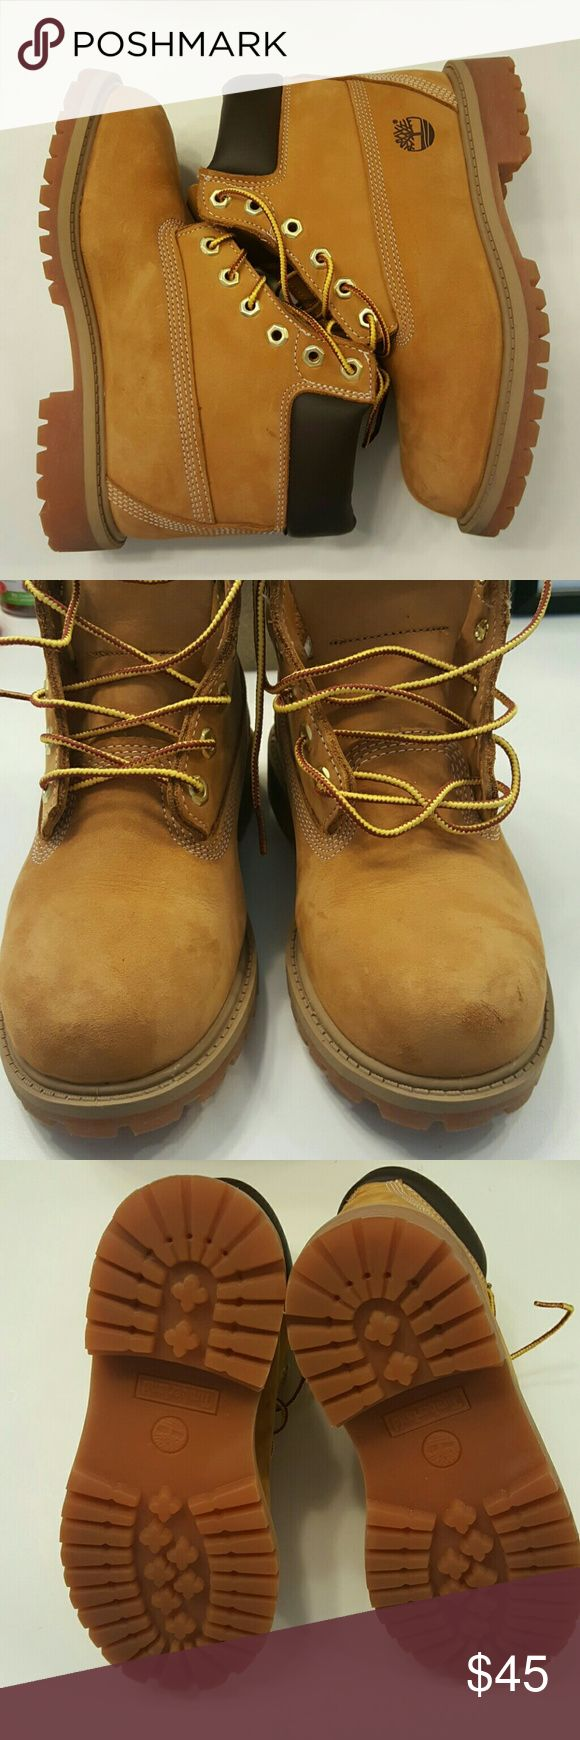 [JUST ADDED] Little Boys Timberland Boots Little Boys Timberland Boots with a few minor scratches shown in pic 2. Otherwise good condition. Genuine leather. Timberland Shoes Boots